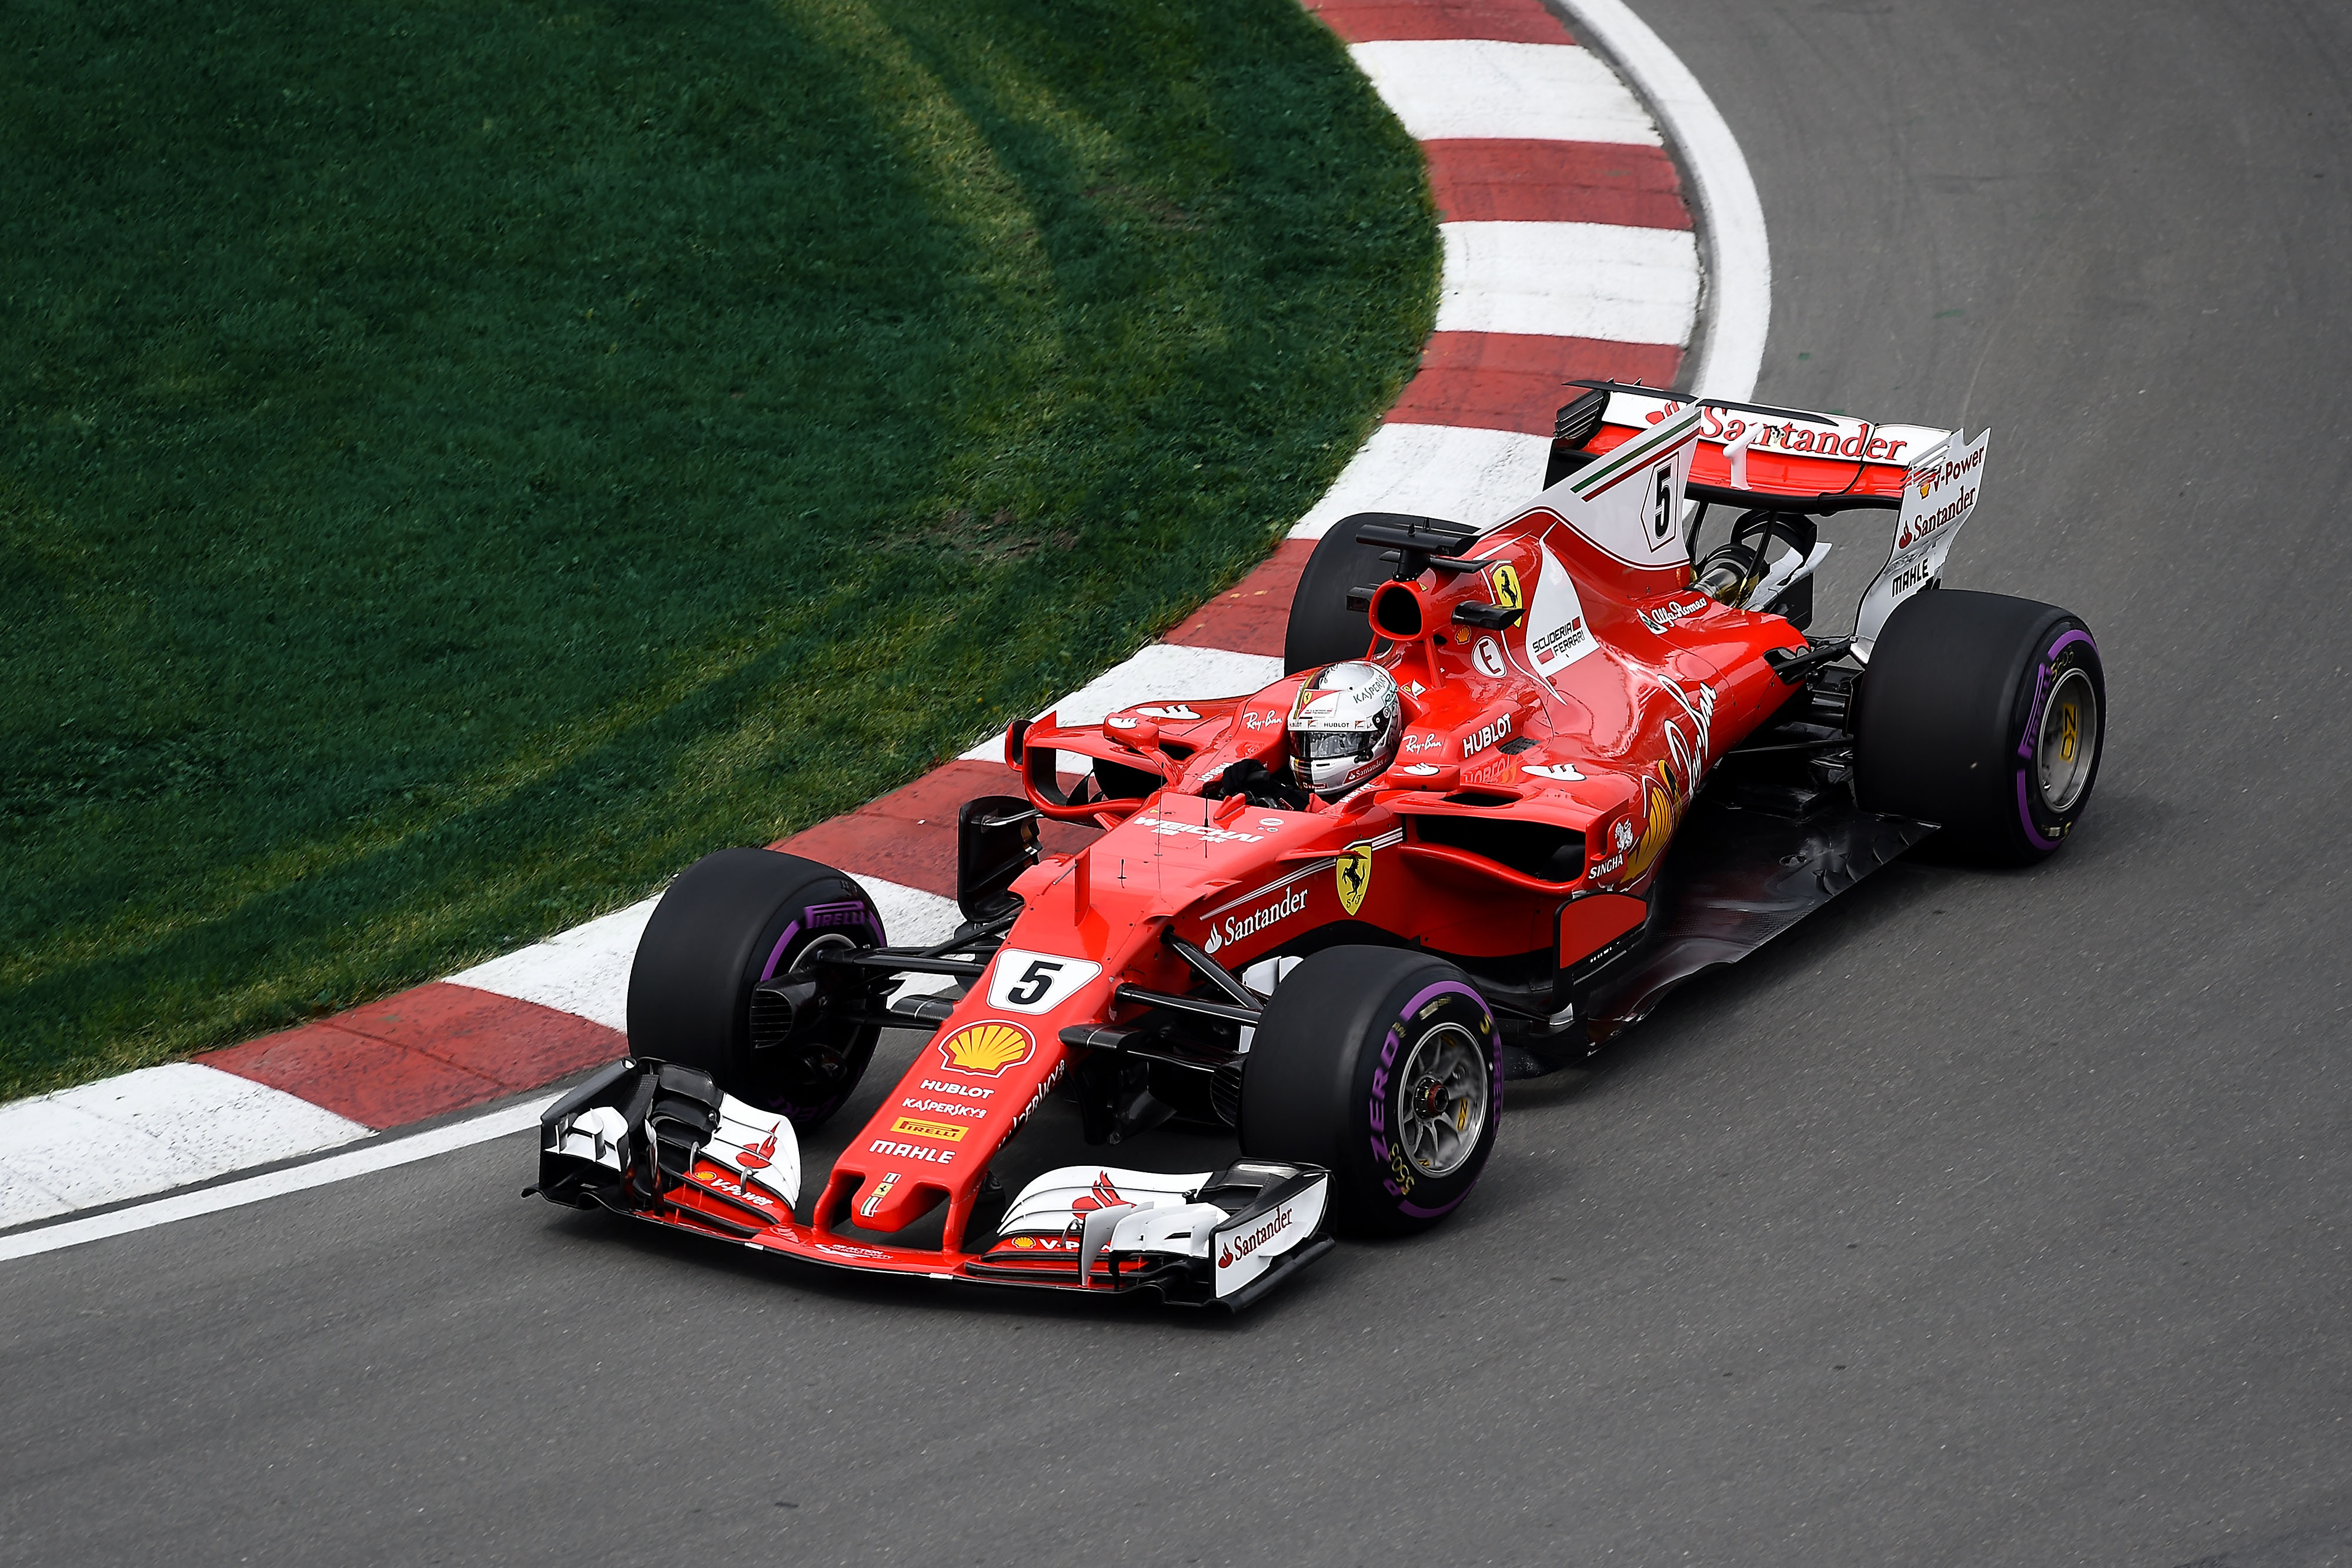 gp canada f1 libere 3 vettel e raikkonen davanti mercedes insegue. Black Bedroom Furniture Sets. Home Design Ideas